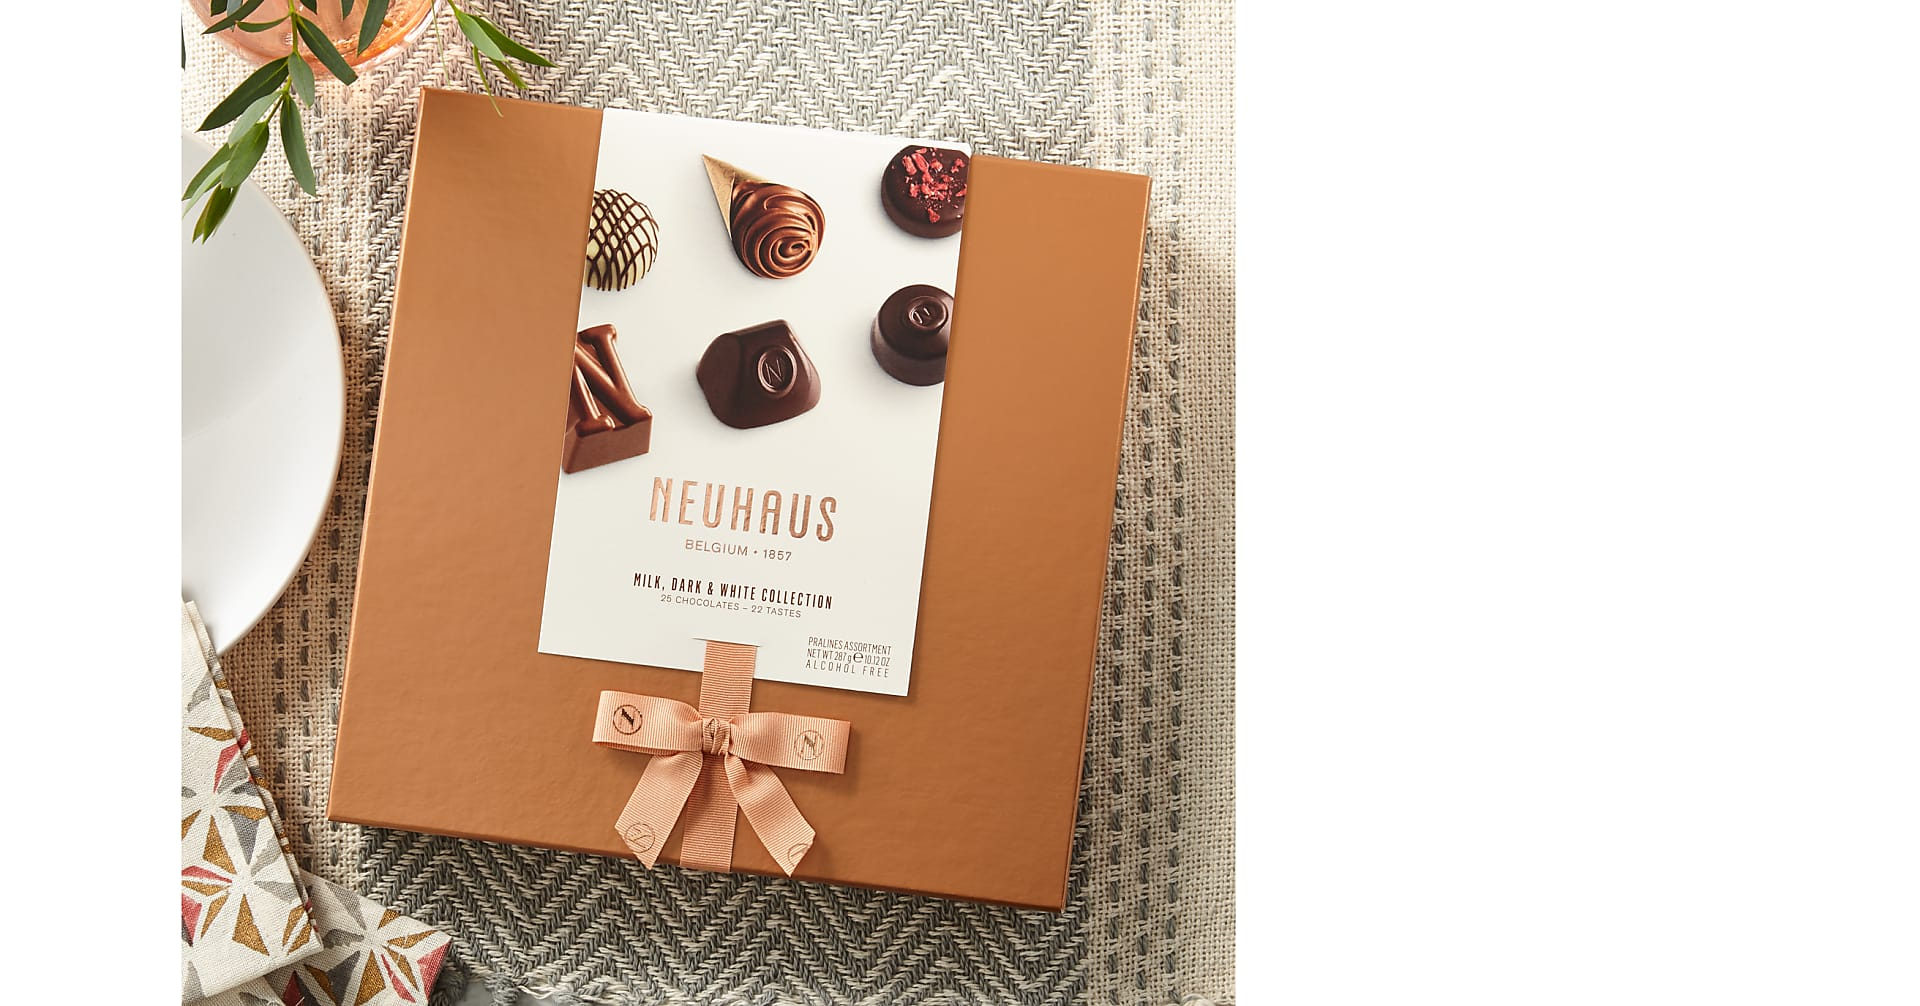 Neuhaus Discovery Collection - Image 2 Of 2